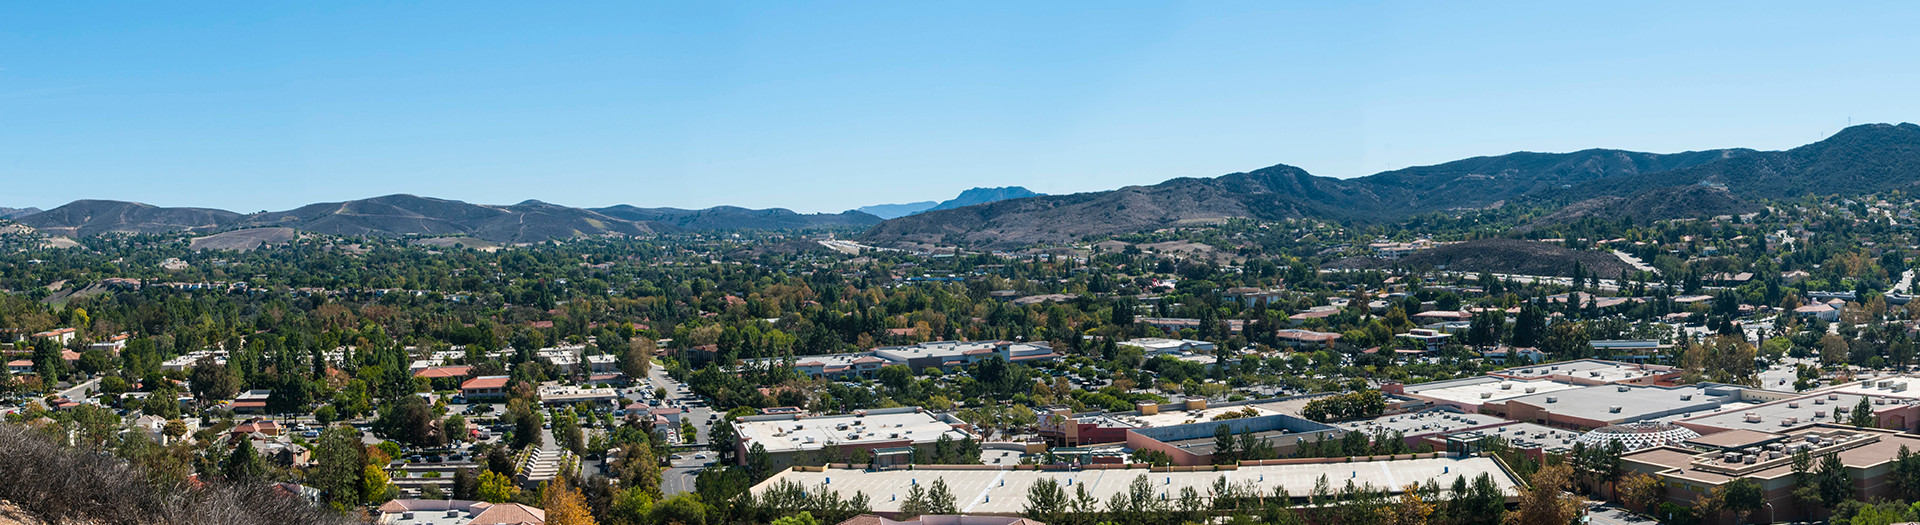 overhead view of Thousand Oaks